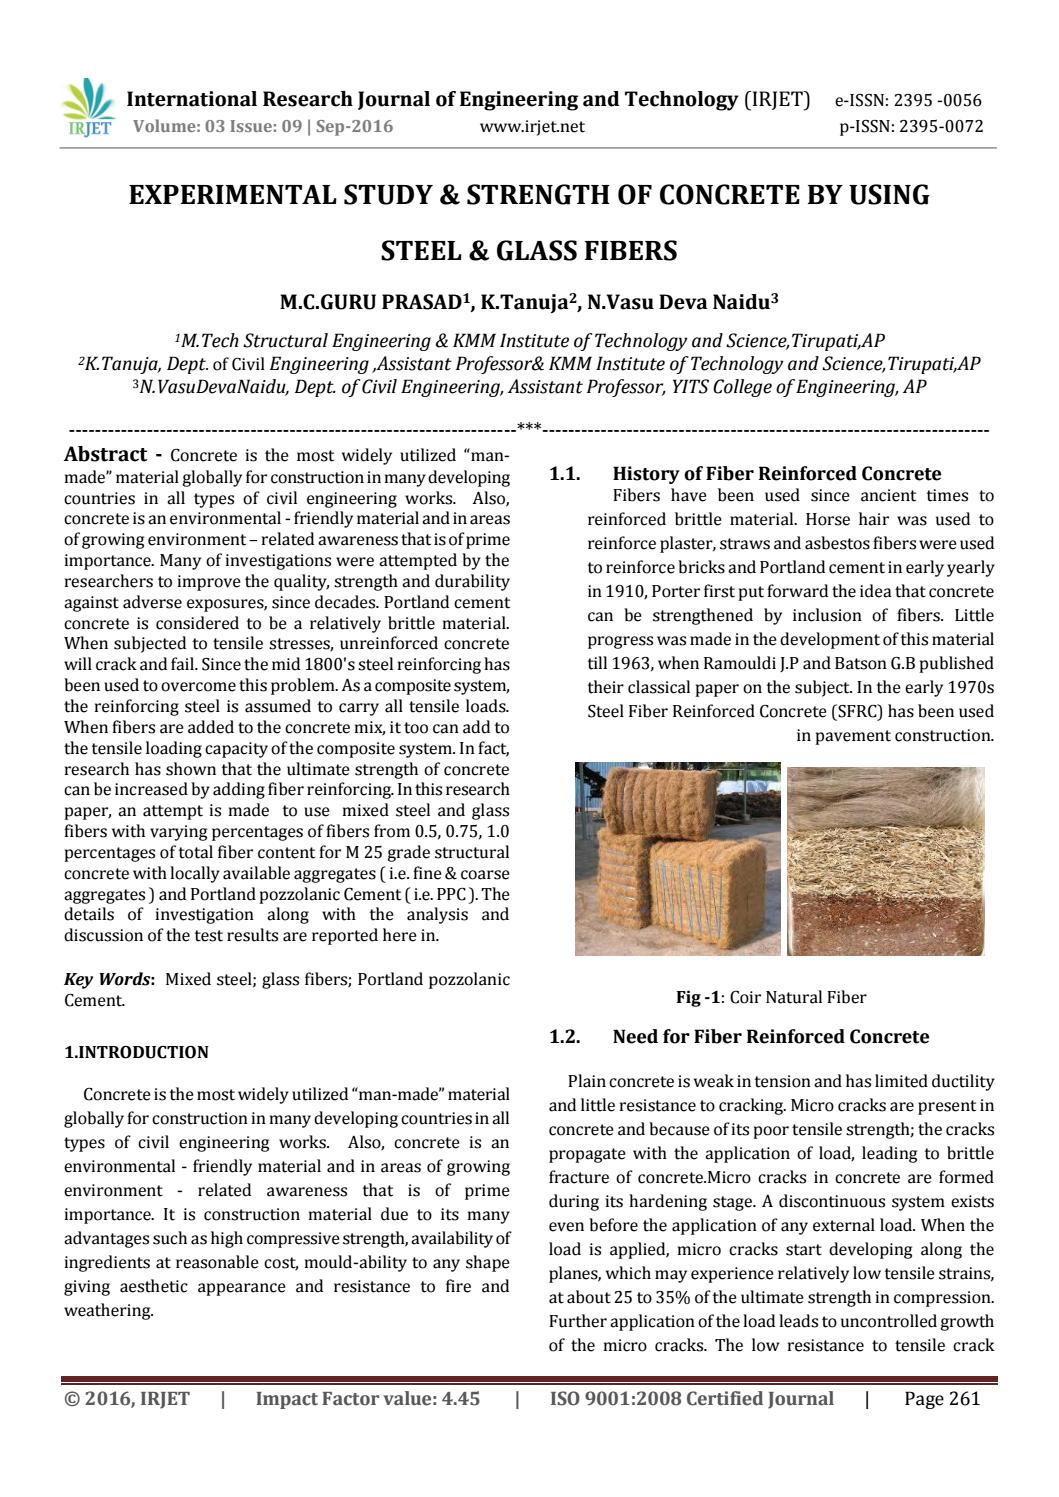 Experimental Study & Strength of Concrete by Using Steel